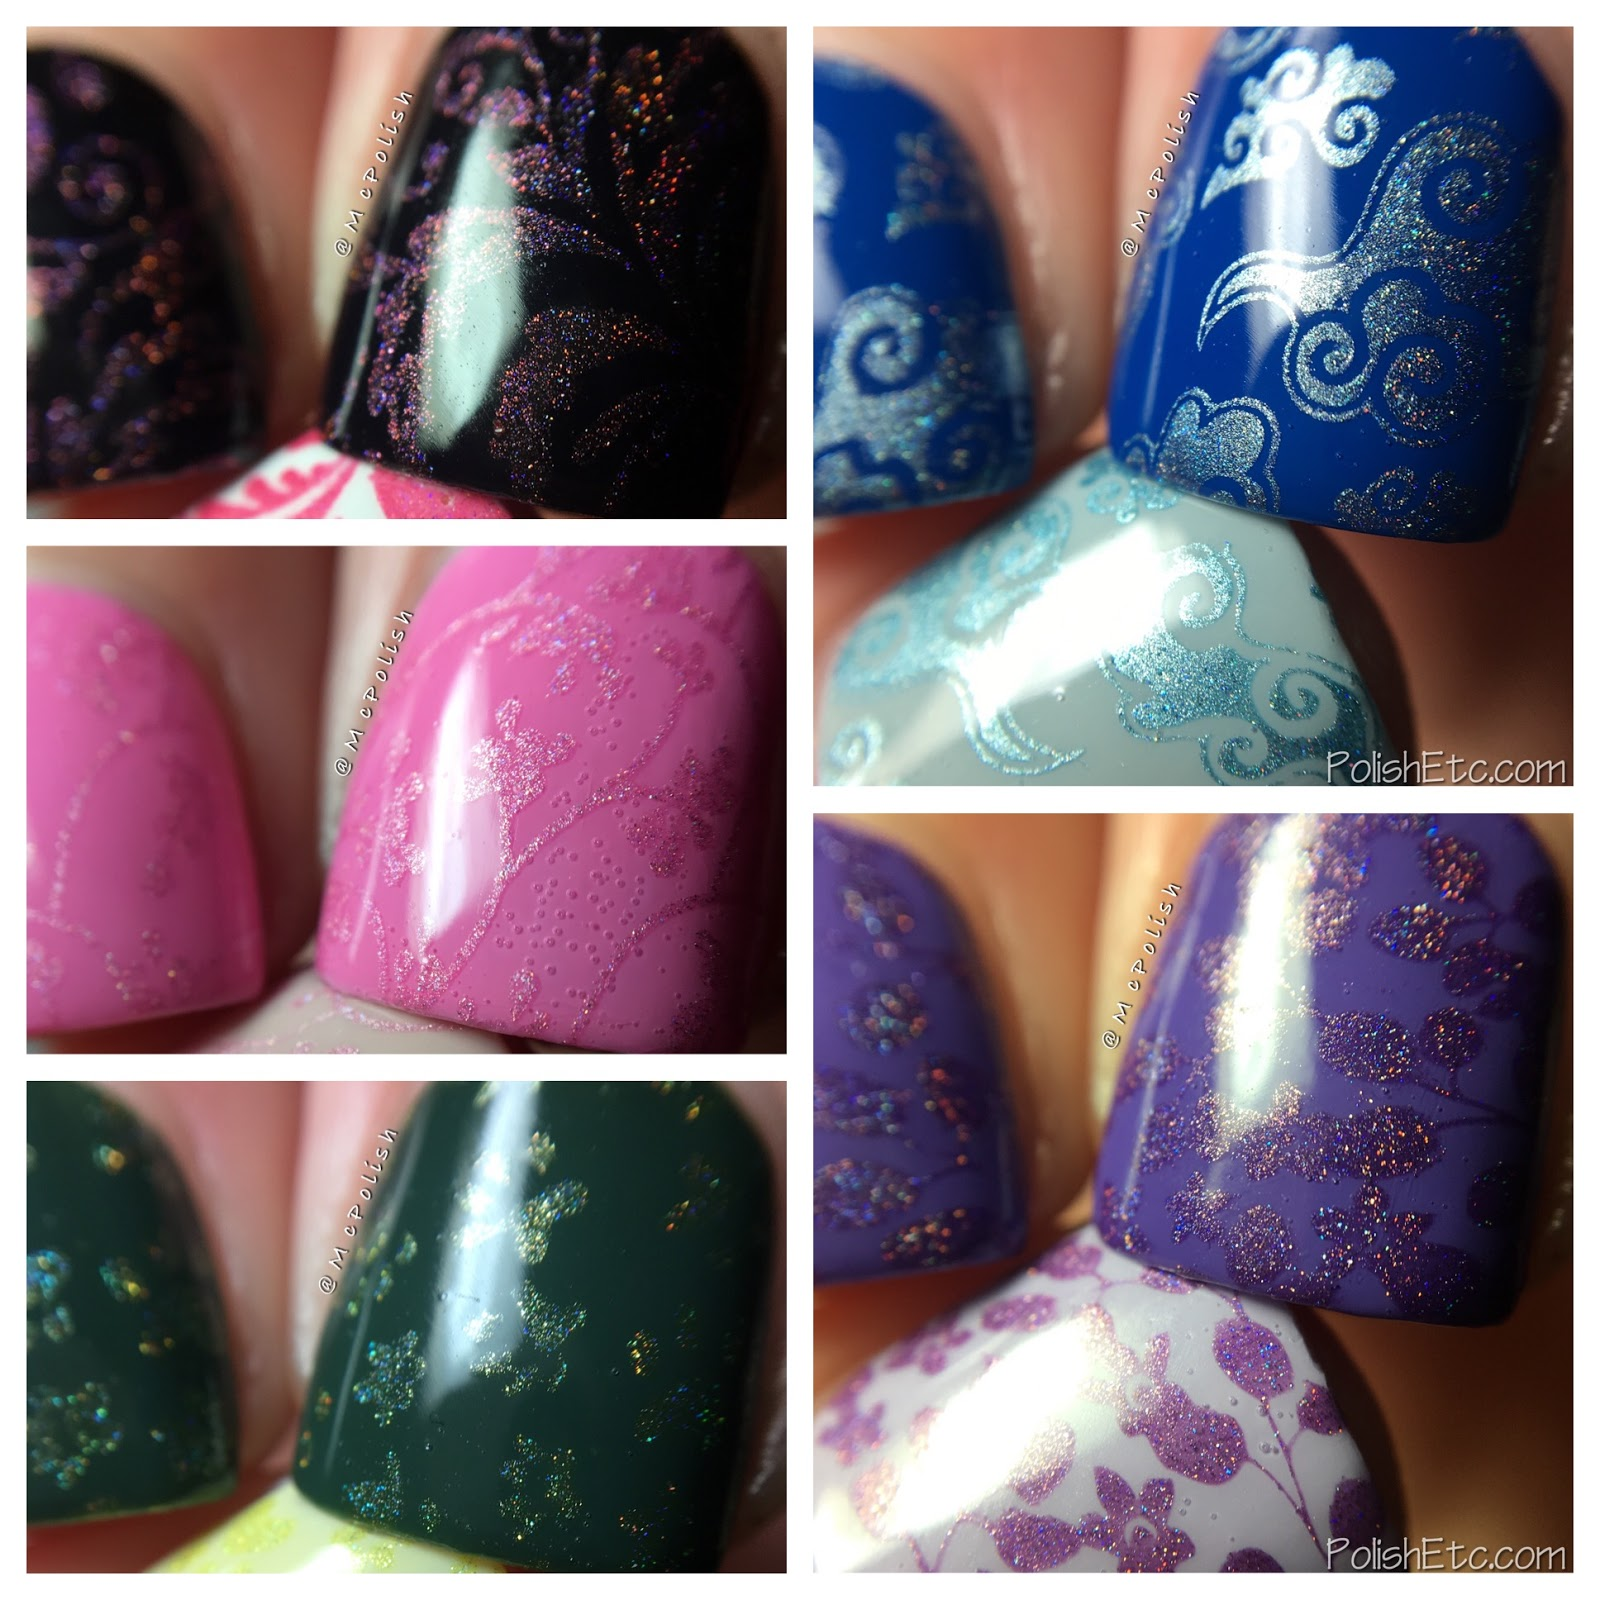 Celestial Cosmetics stamping polishes for Color4Nails - McPolish